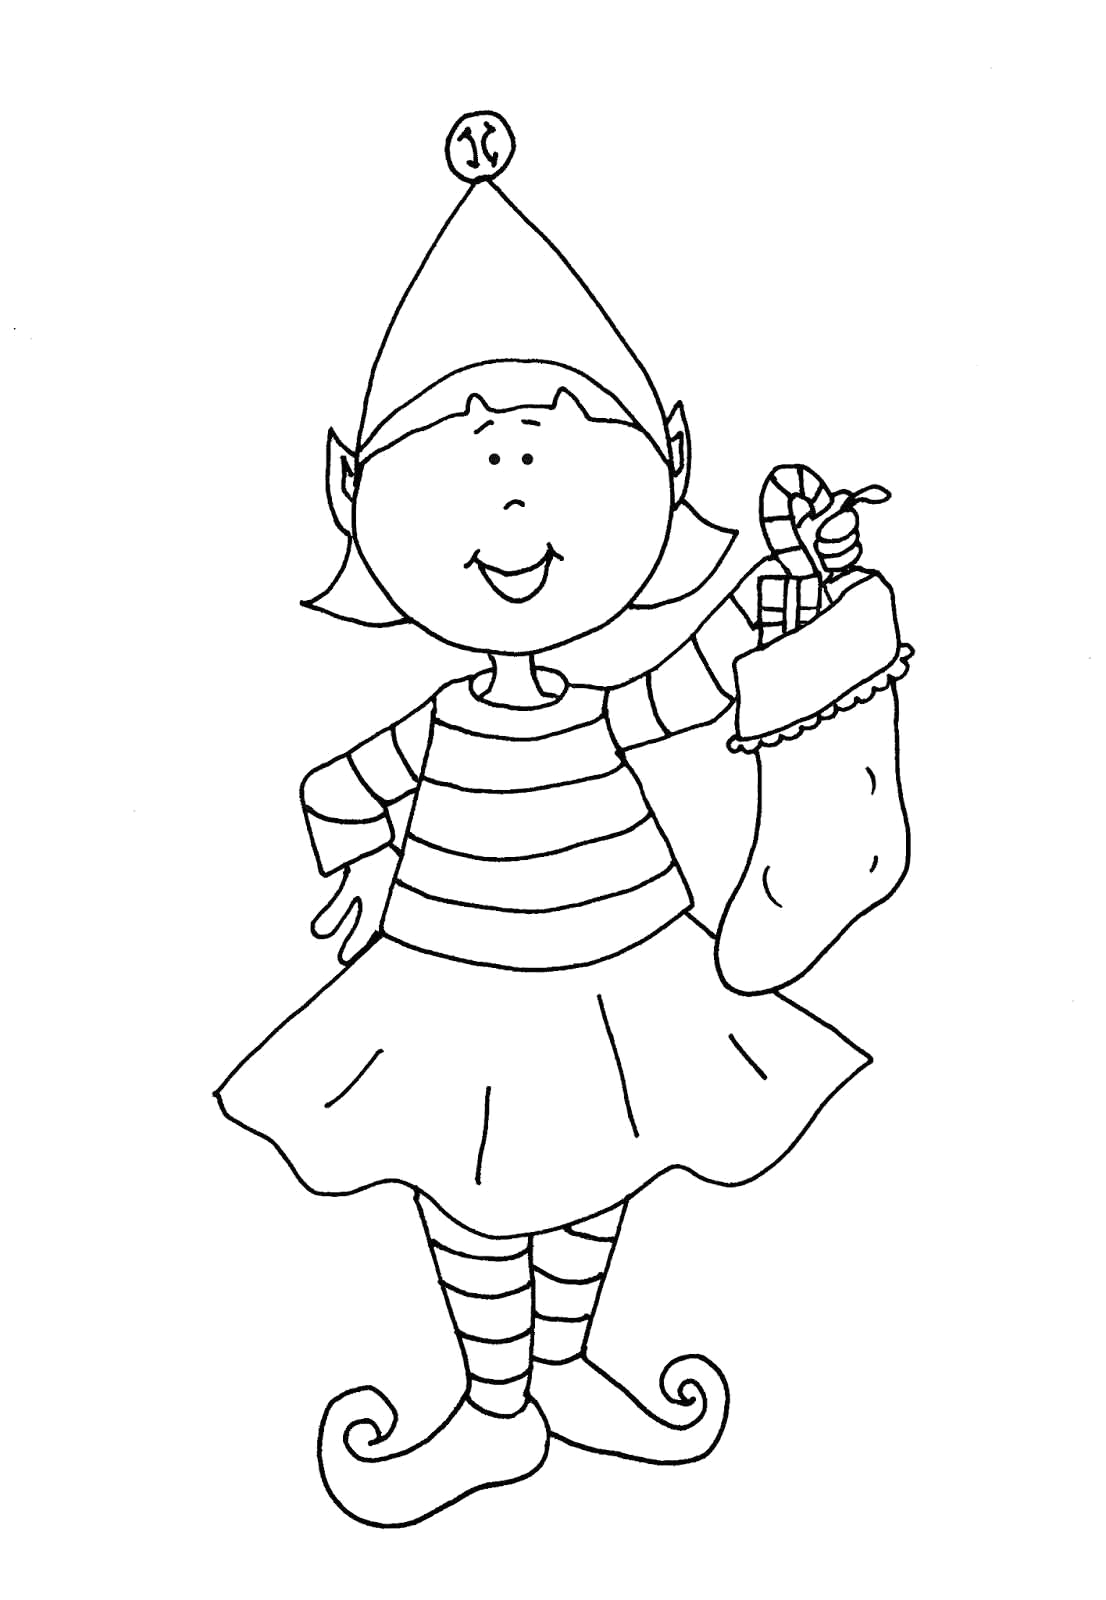 Cute Elf On the Shelf Coloring Pages Cute Elf On A Shelf Coloring Pages Printable astounding